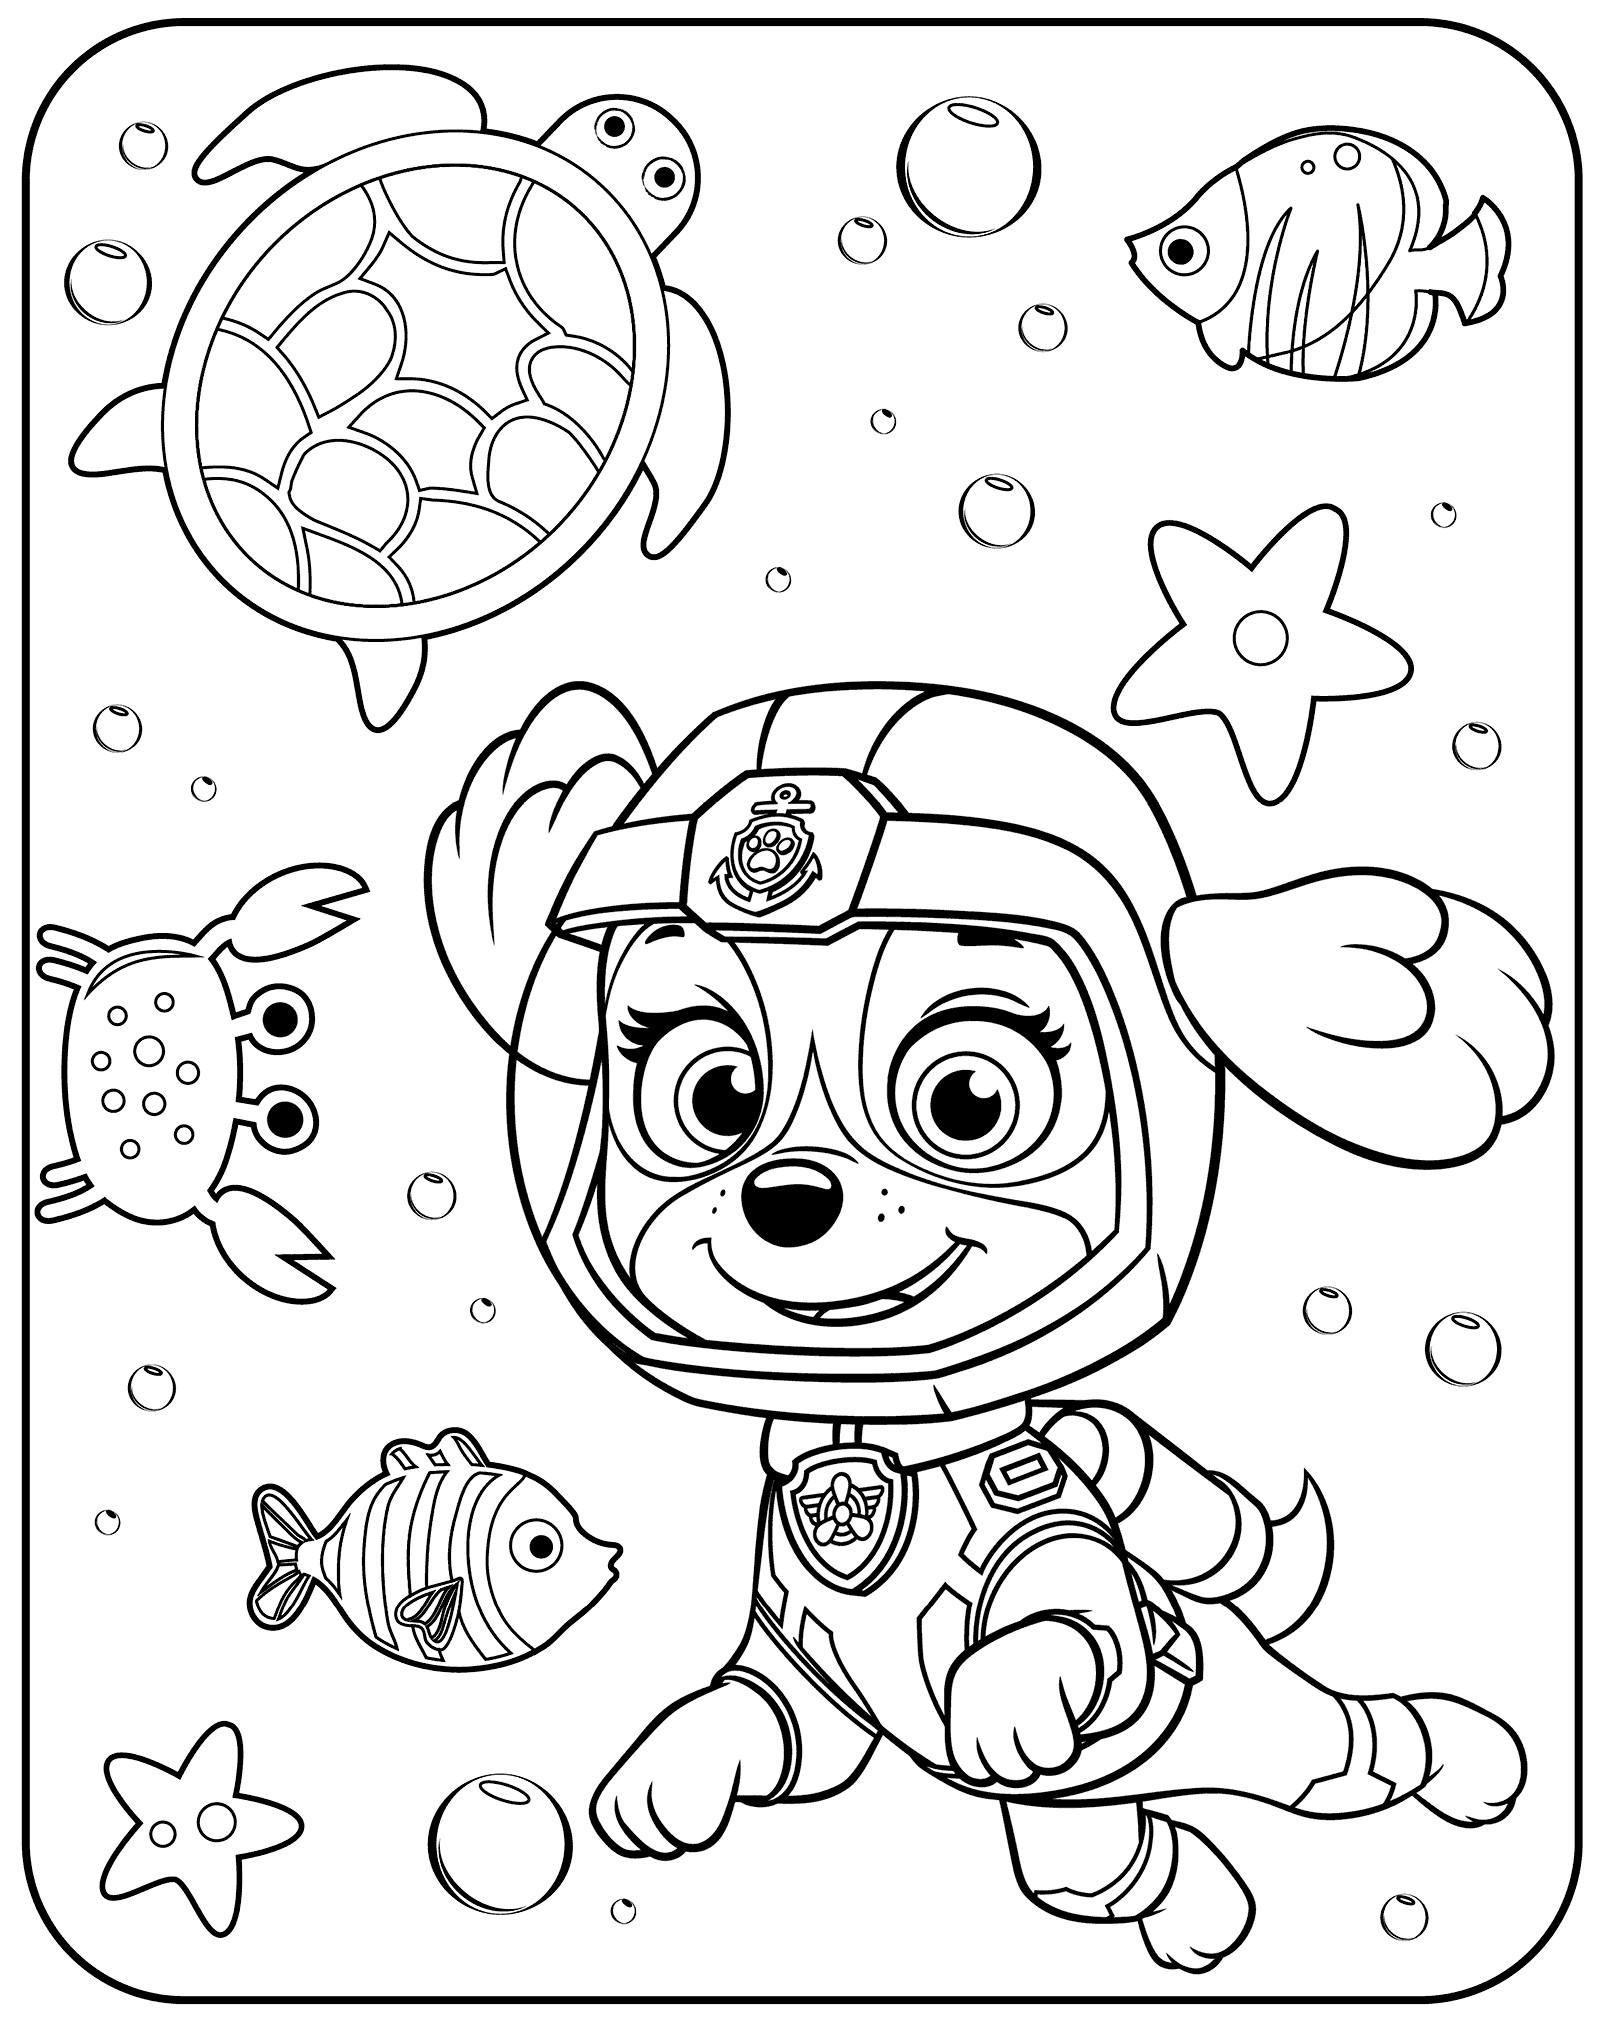 paw patrol vehicles coloring pages paw patrol vehicles coloring pages at getdrawings free paw pages patrol coloring vehicles